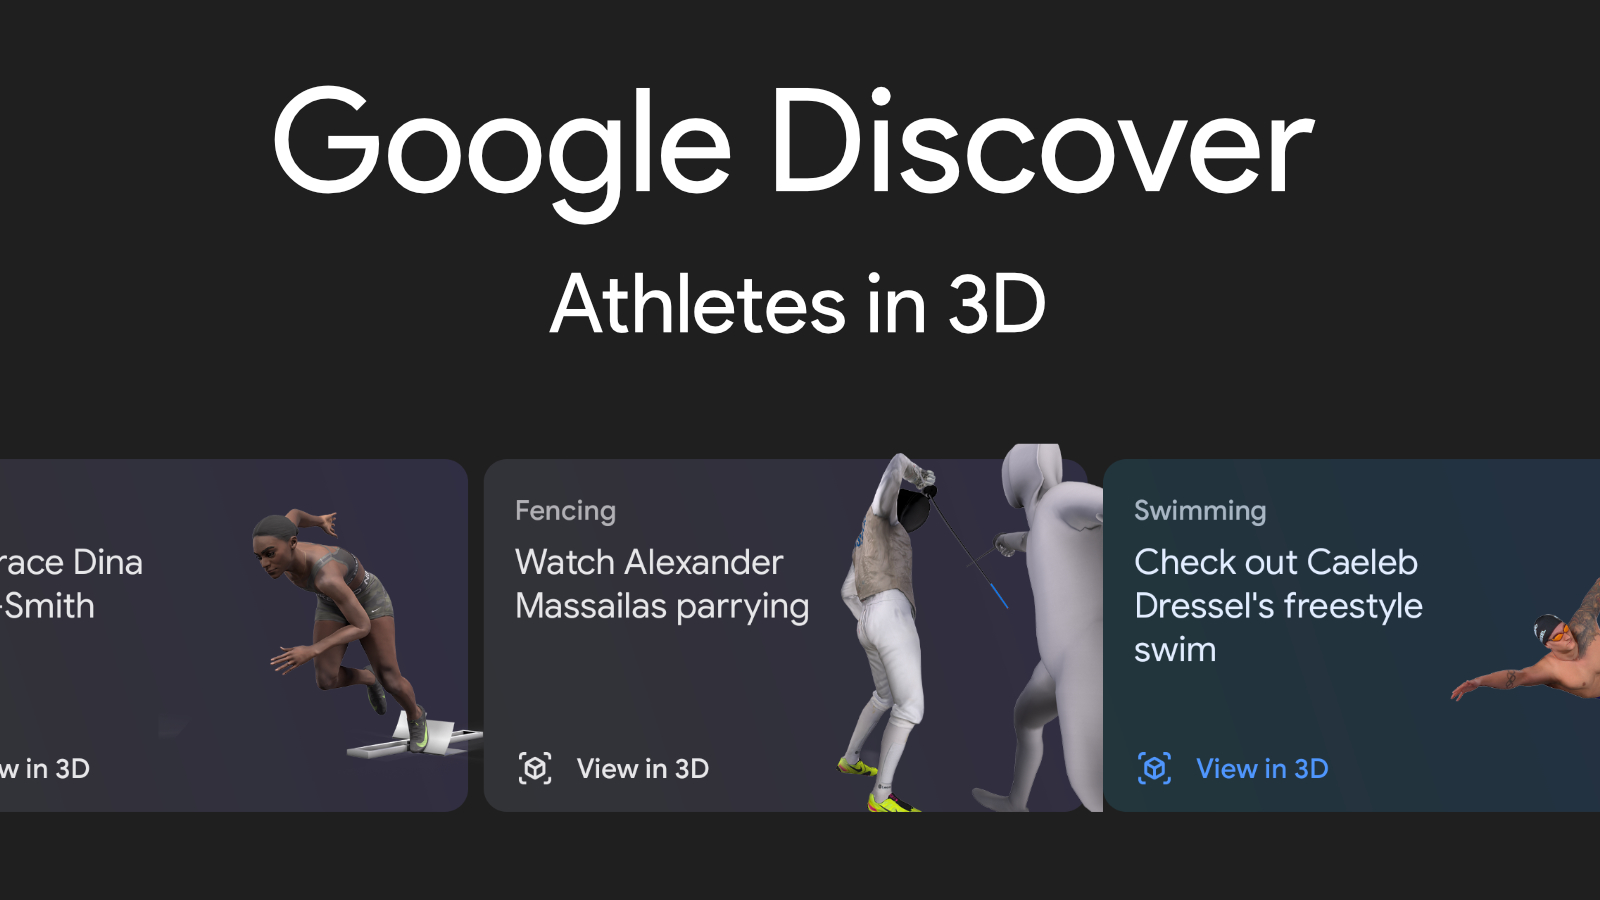 Google Discover begins showing Athletes in 3D to celebrate the 2020 Tokyo Olympics